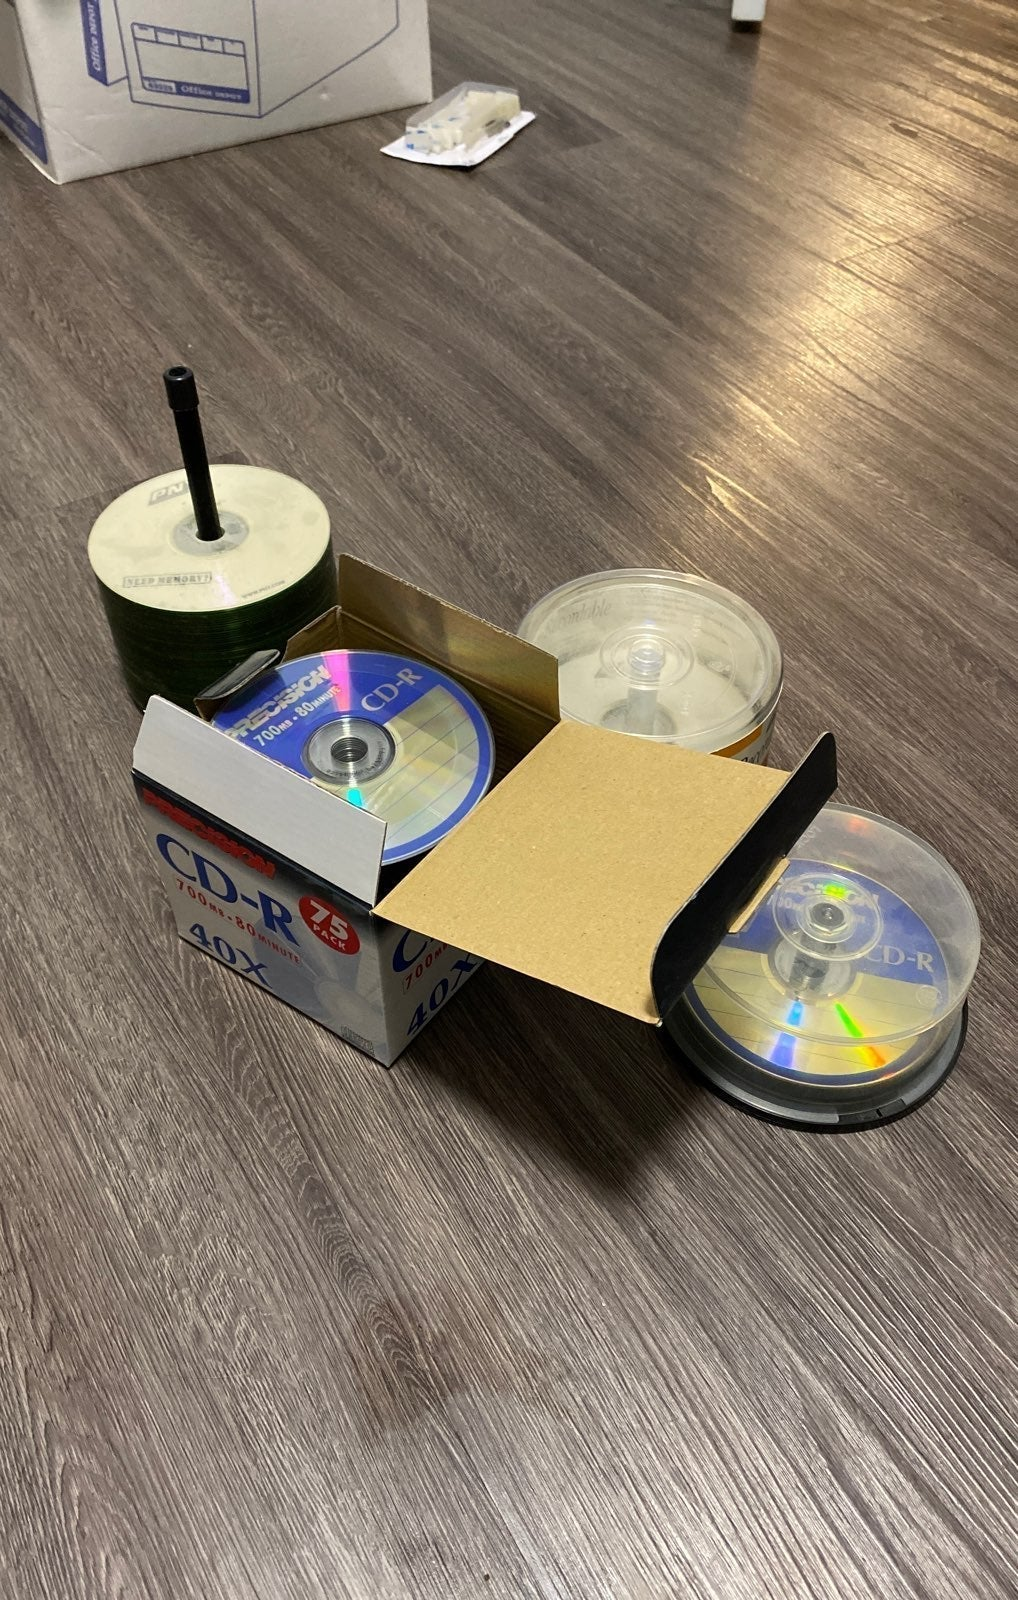 140 Blank recordable cd-r